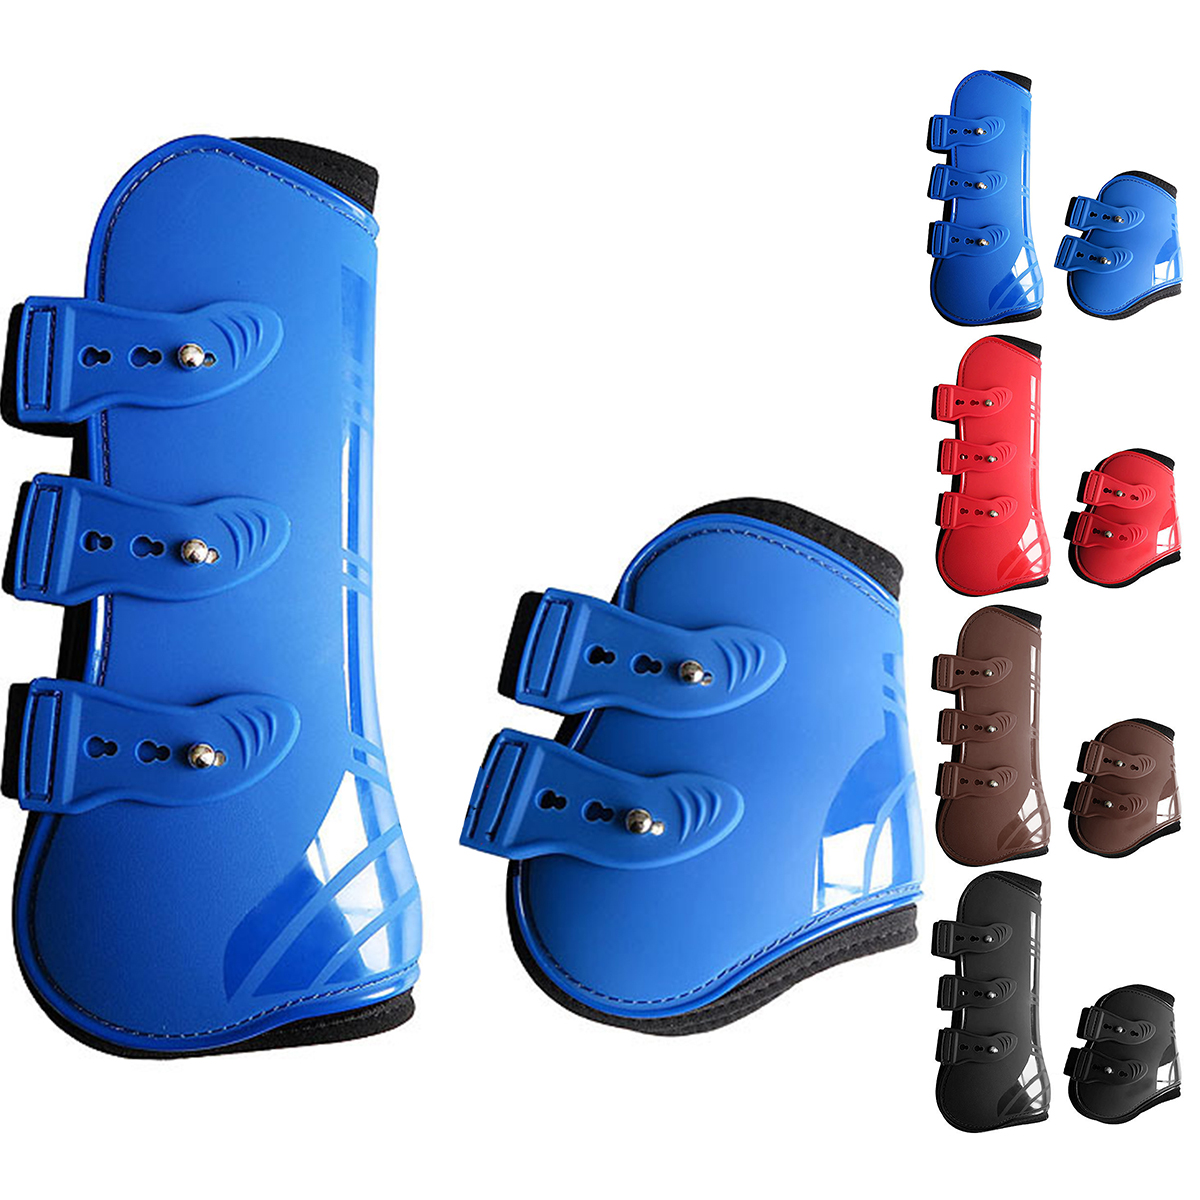 4pcs Practical Front Hind Brace Protection Wrap Farm Horse Leg Boots Adjustable Training Guard Durable Equestrian Outdoor Riding